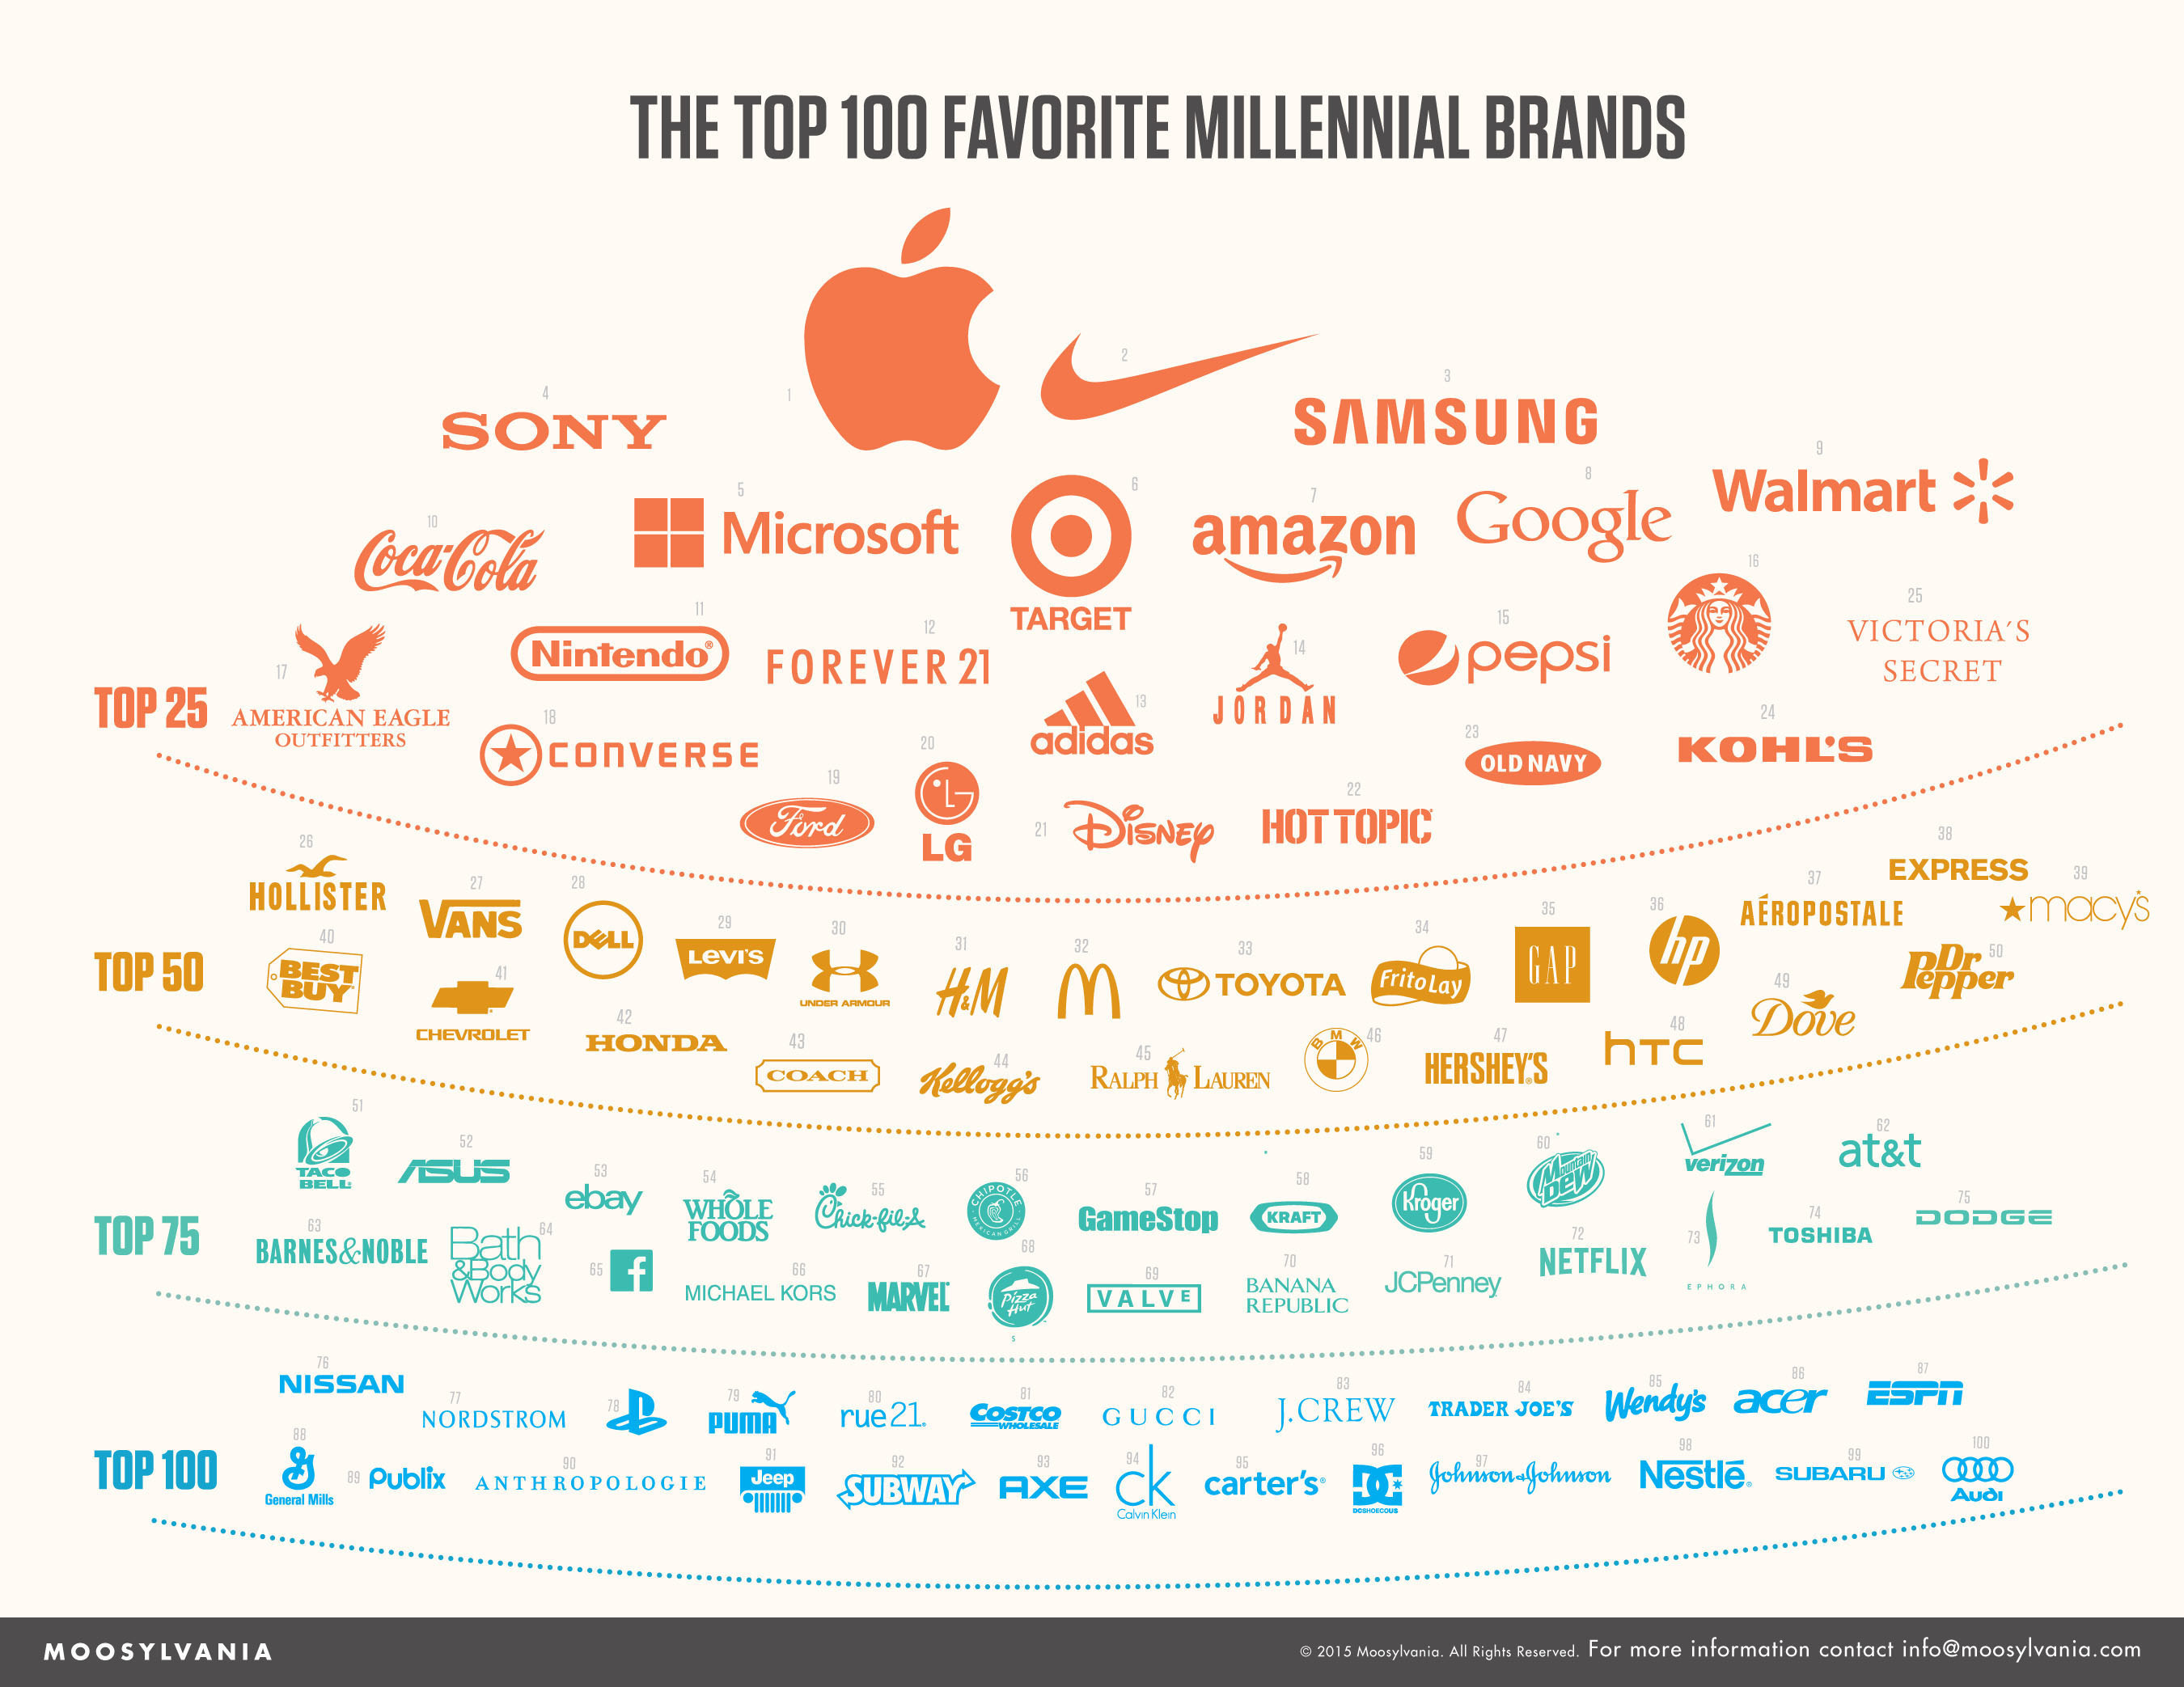 'Entertain Me,' Say Millennials in Top 100 Brand Ranking Survey